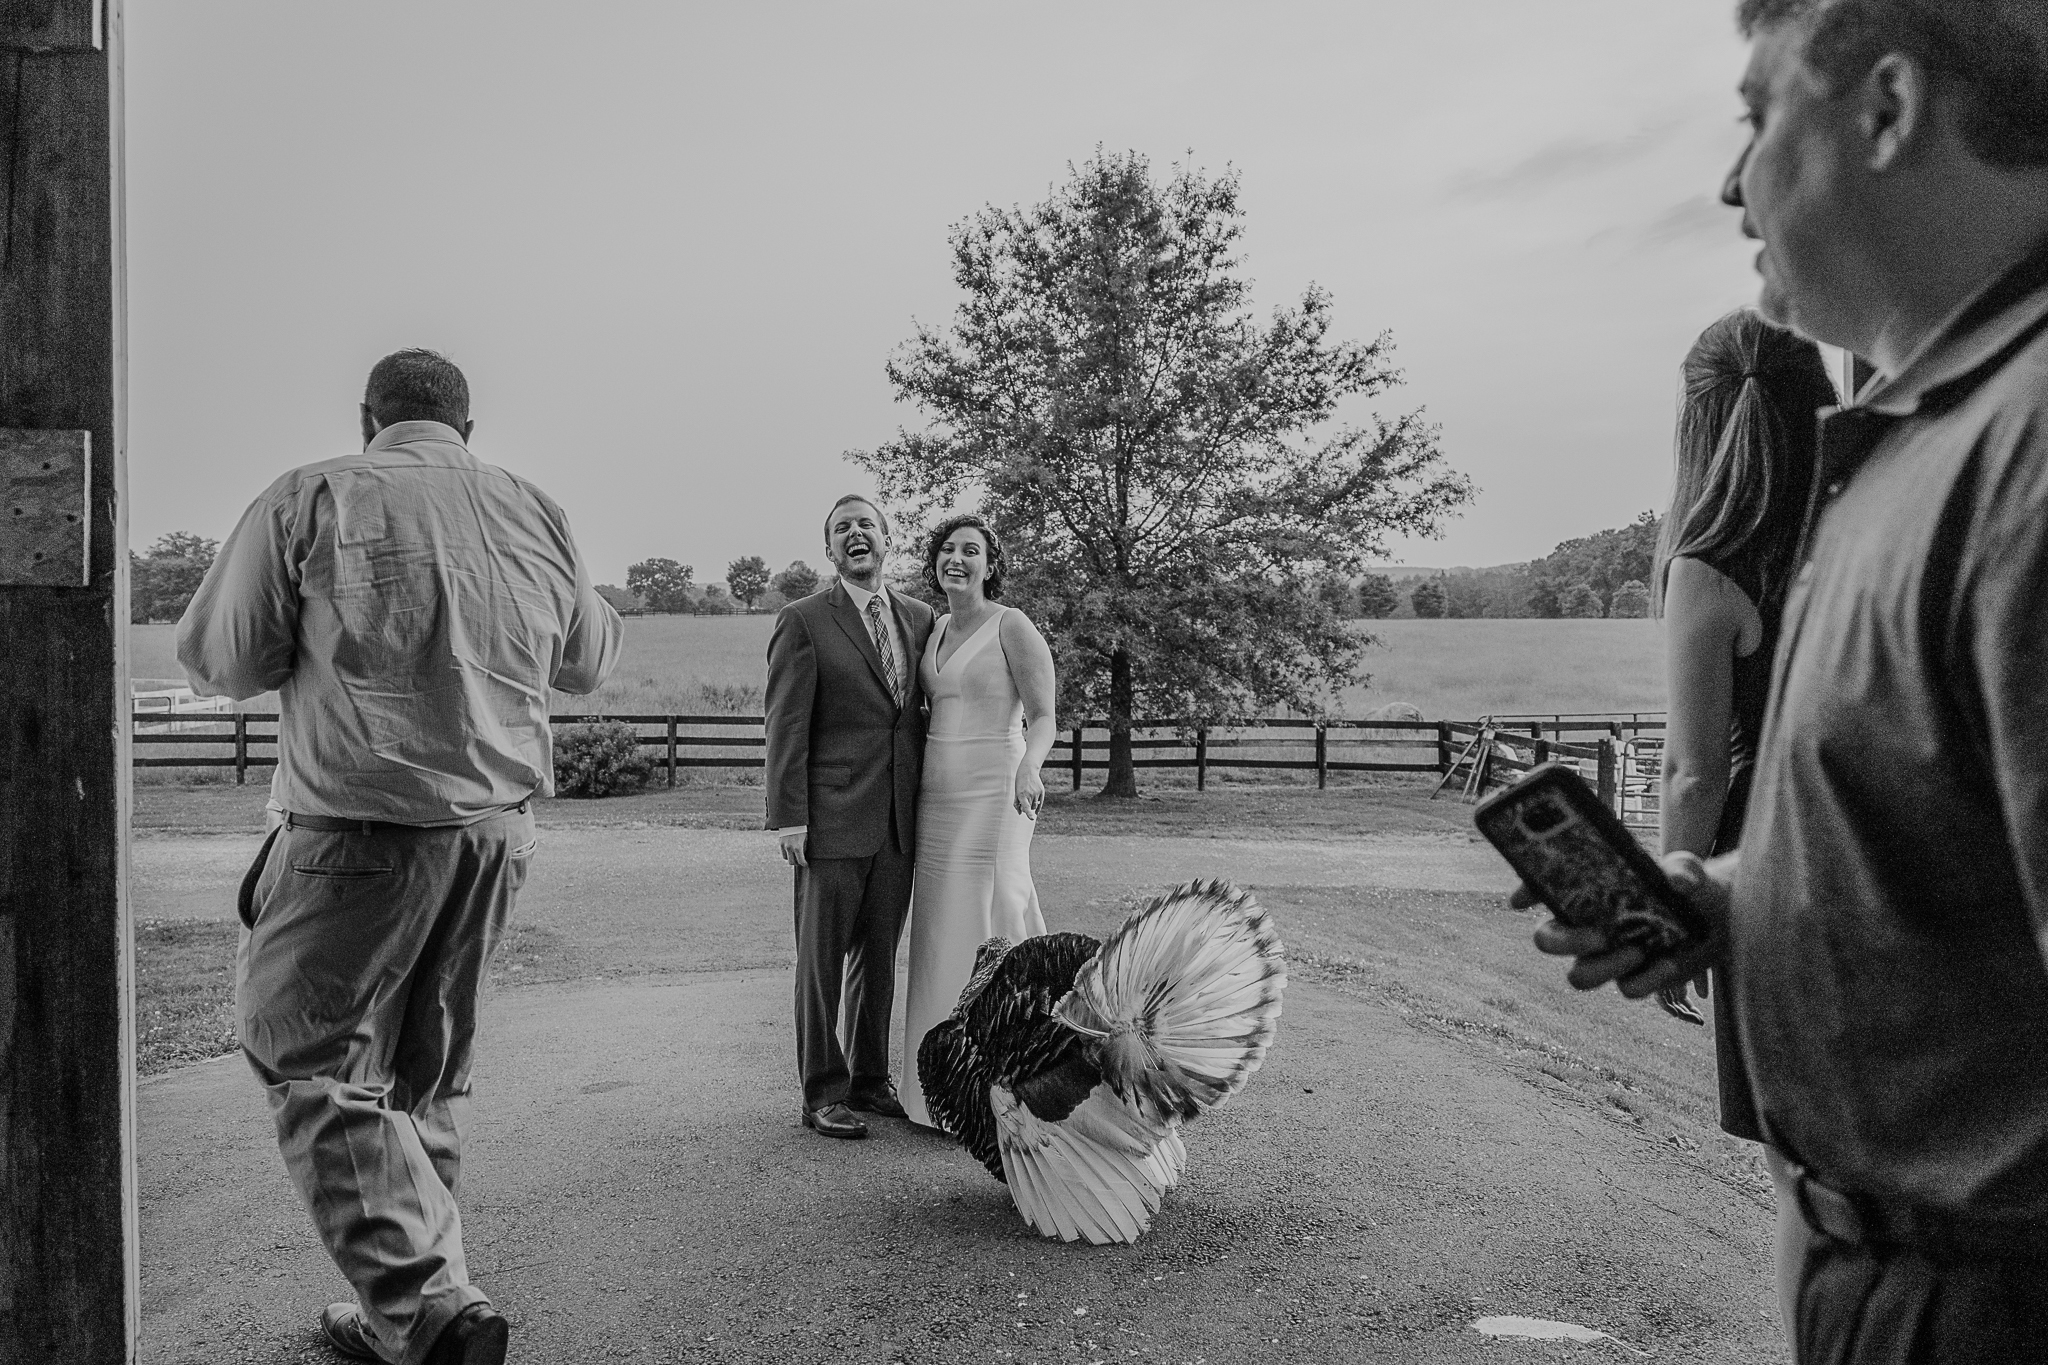 darcy_troutman_photography (9 of 12).jpg